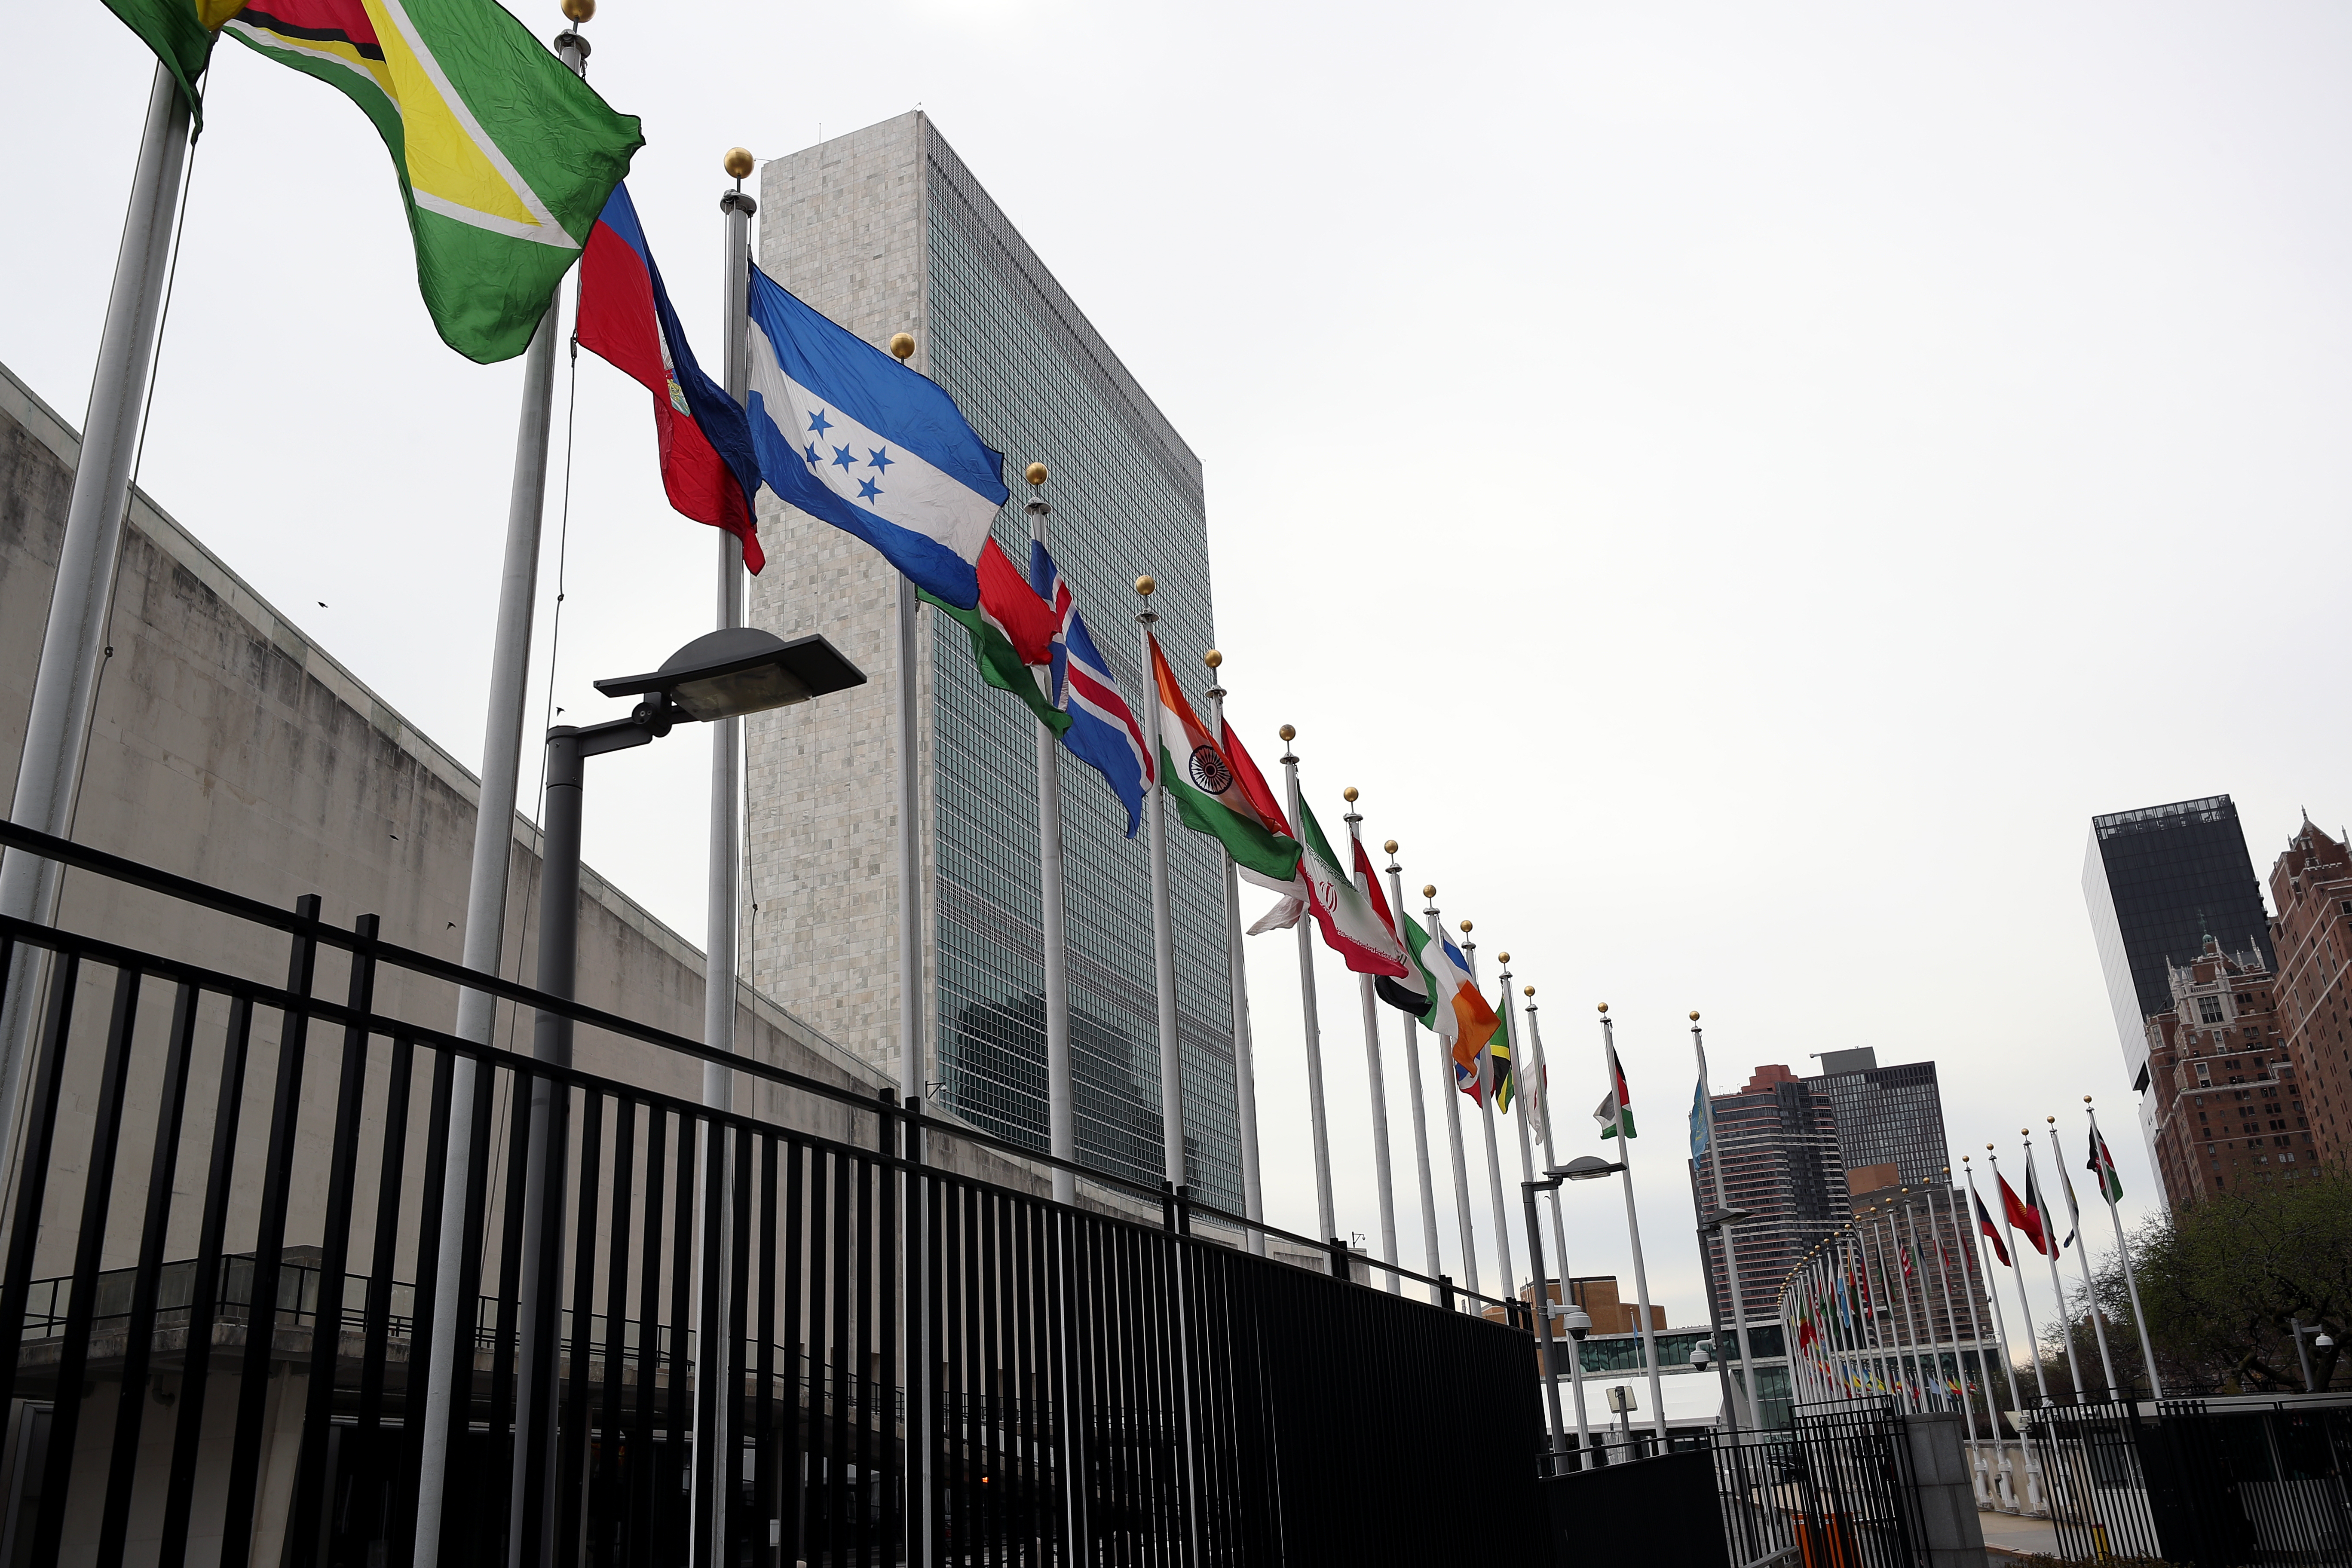 Diplomat from Philippines first known coronavirus case at U.N. in New York